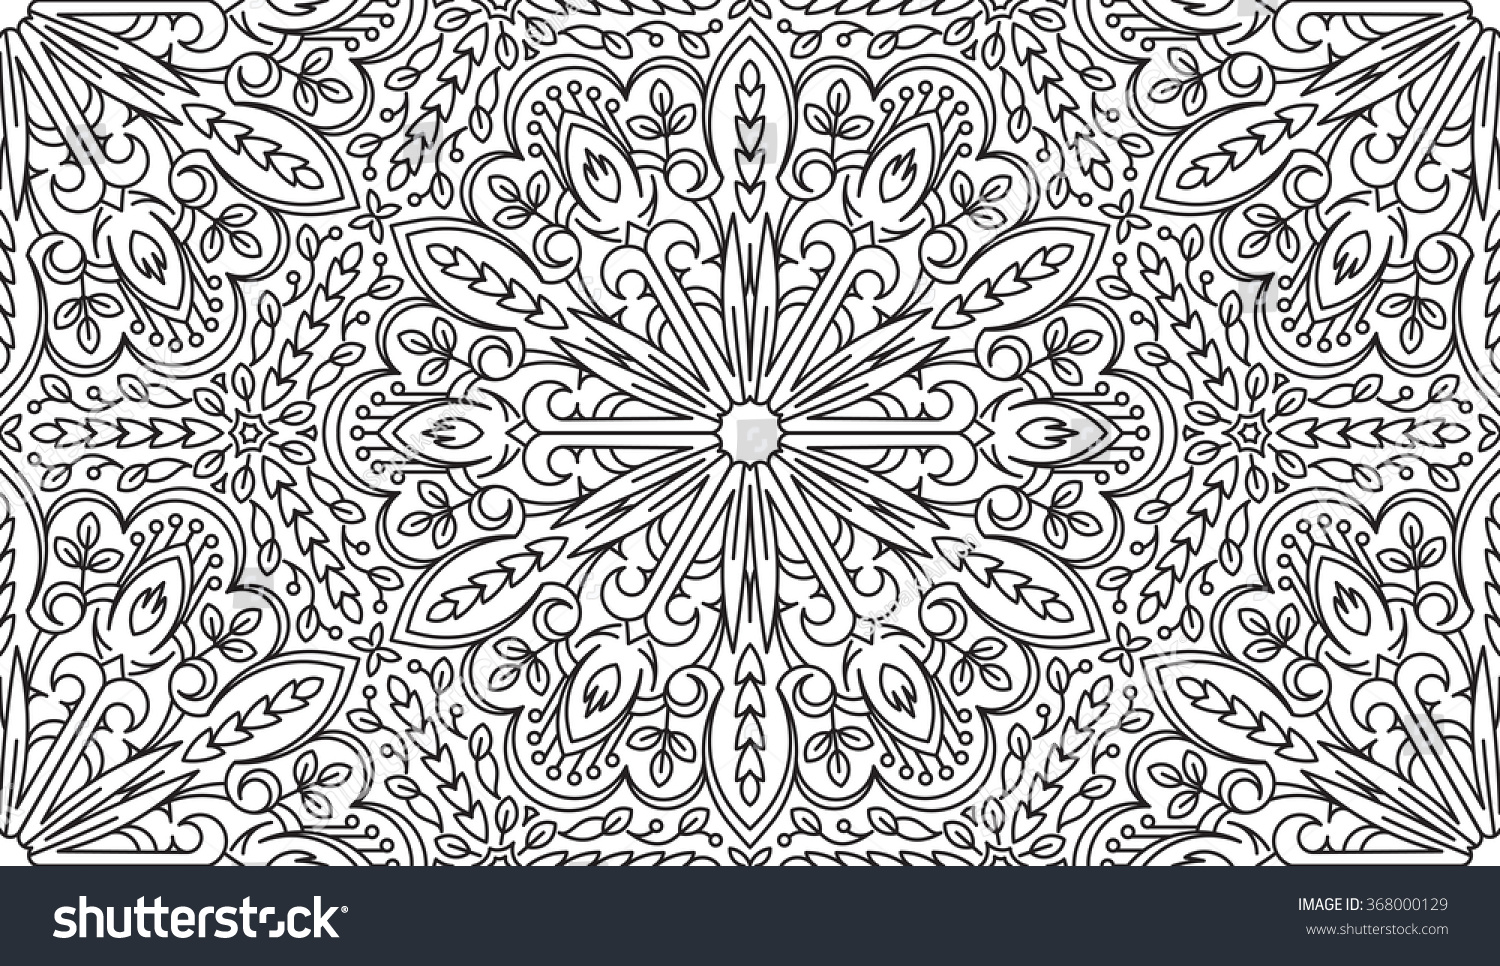 Stock Illustration Volleyball Tribal Abstract Vector: Seamless Abstract Tribal Blackwhite Pattern Hand 스톡 벡터